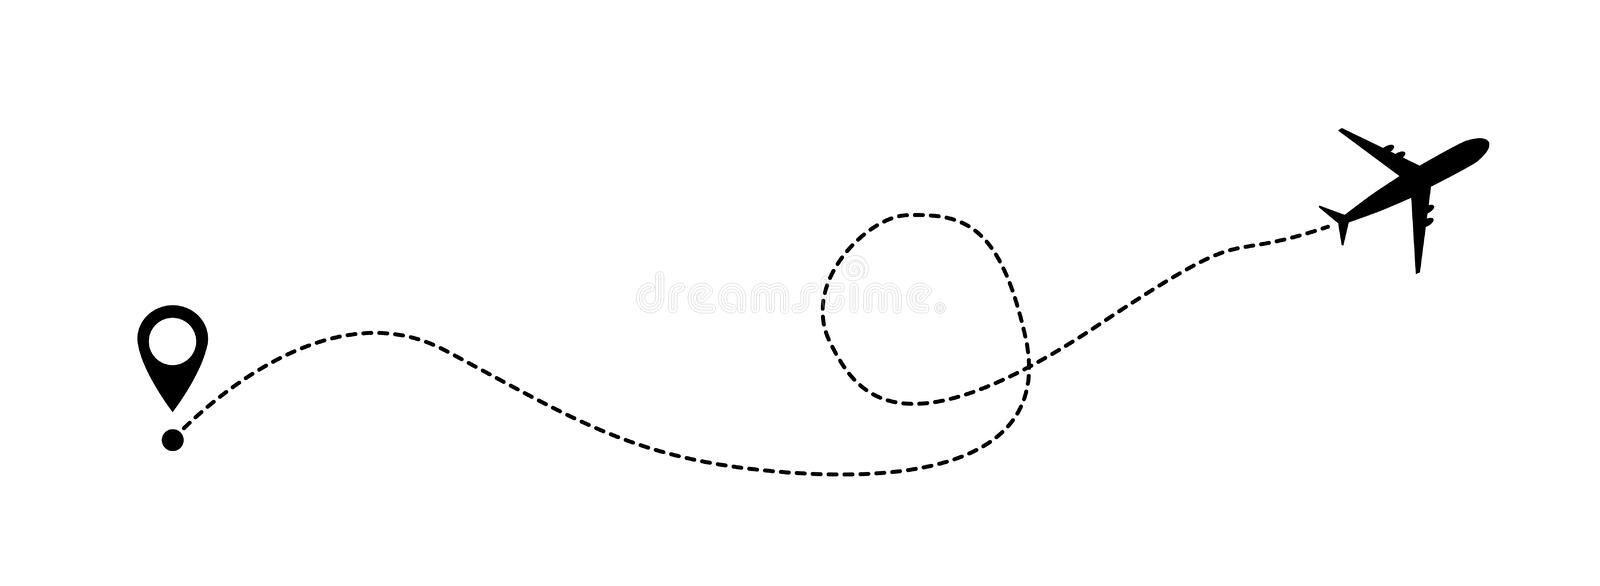 Airplane line vector icon of air plane flight route with start point and line trace vector illustration